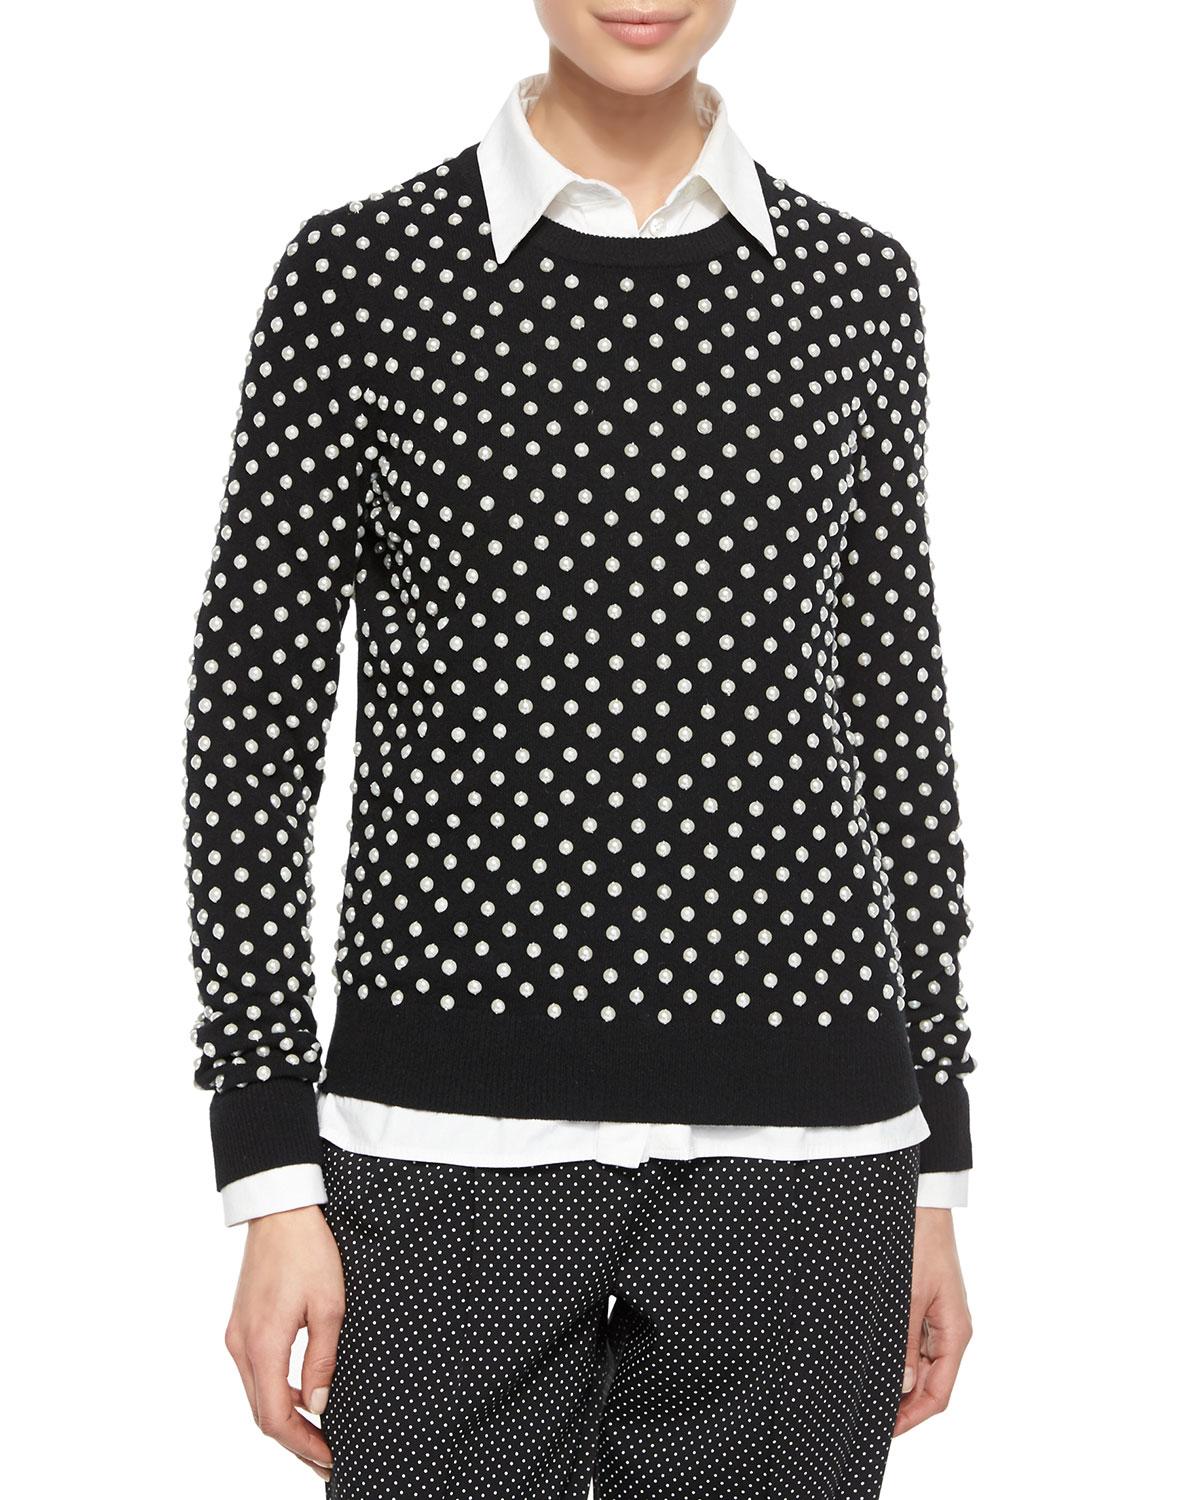 michael kors pearlescent hand embroidered sweater in black lyst. Black Bedroom Furniture Sets. Home Design Ideas